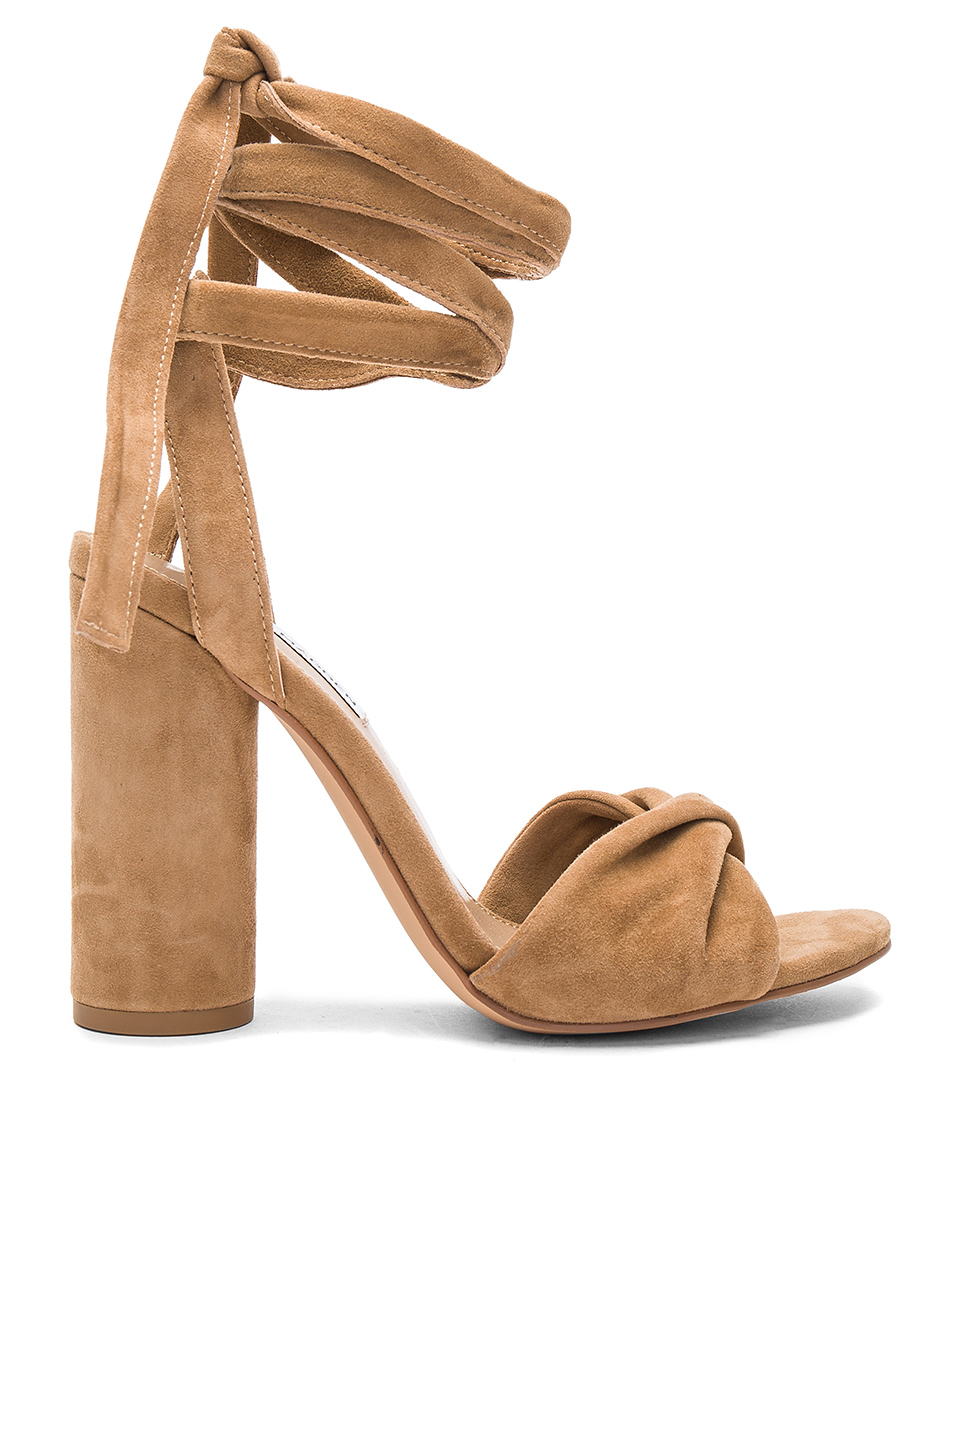 d28ab7a07b4 Steve Madden Clary Heel In Camel Suede